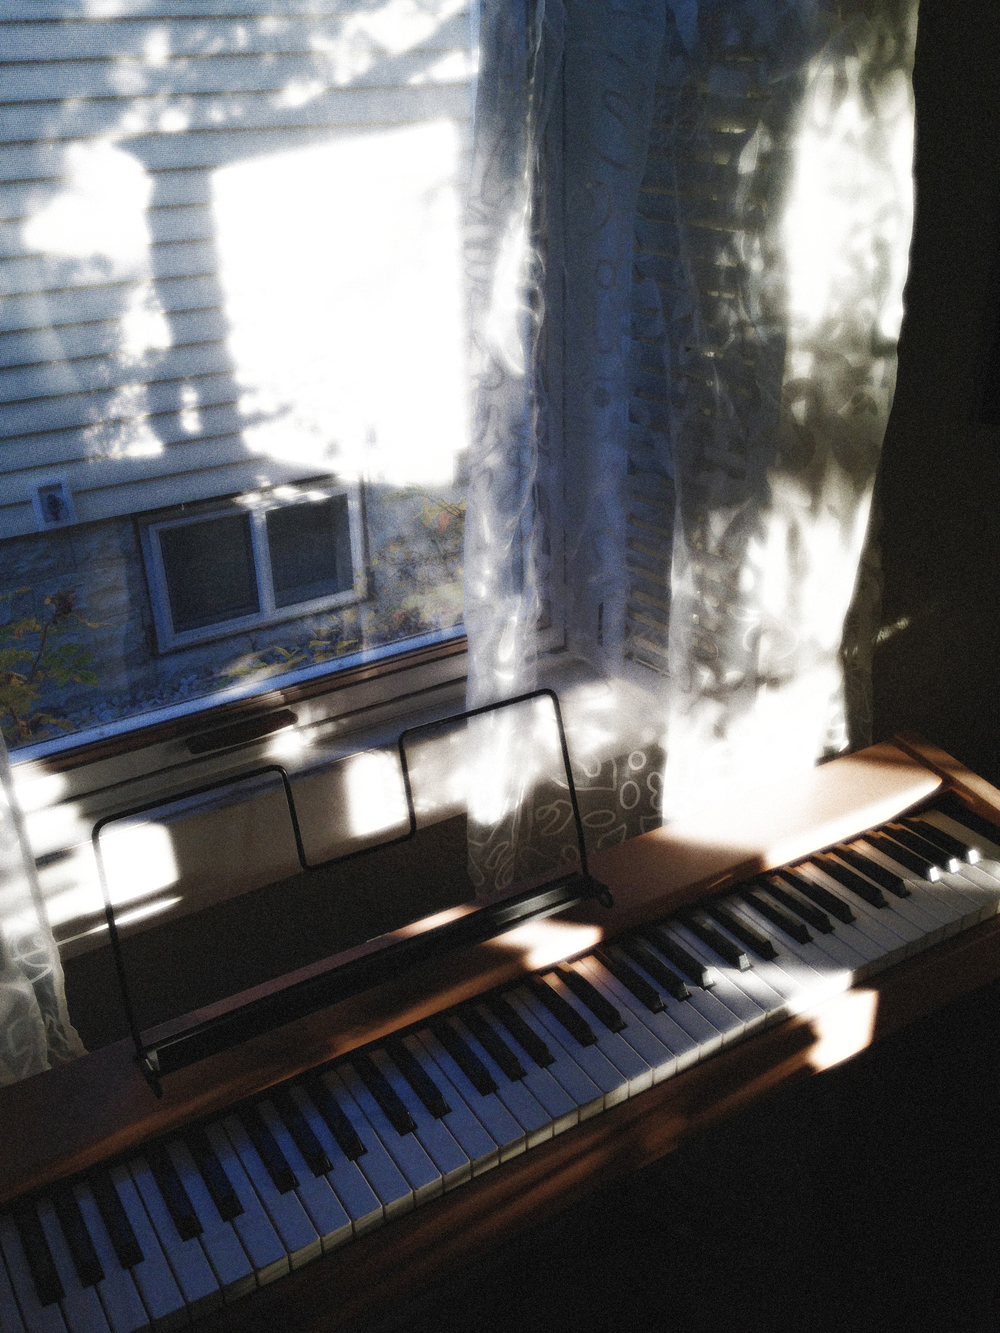 Piano VHS 2015, posted January 24, wk 31